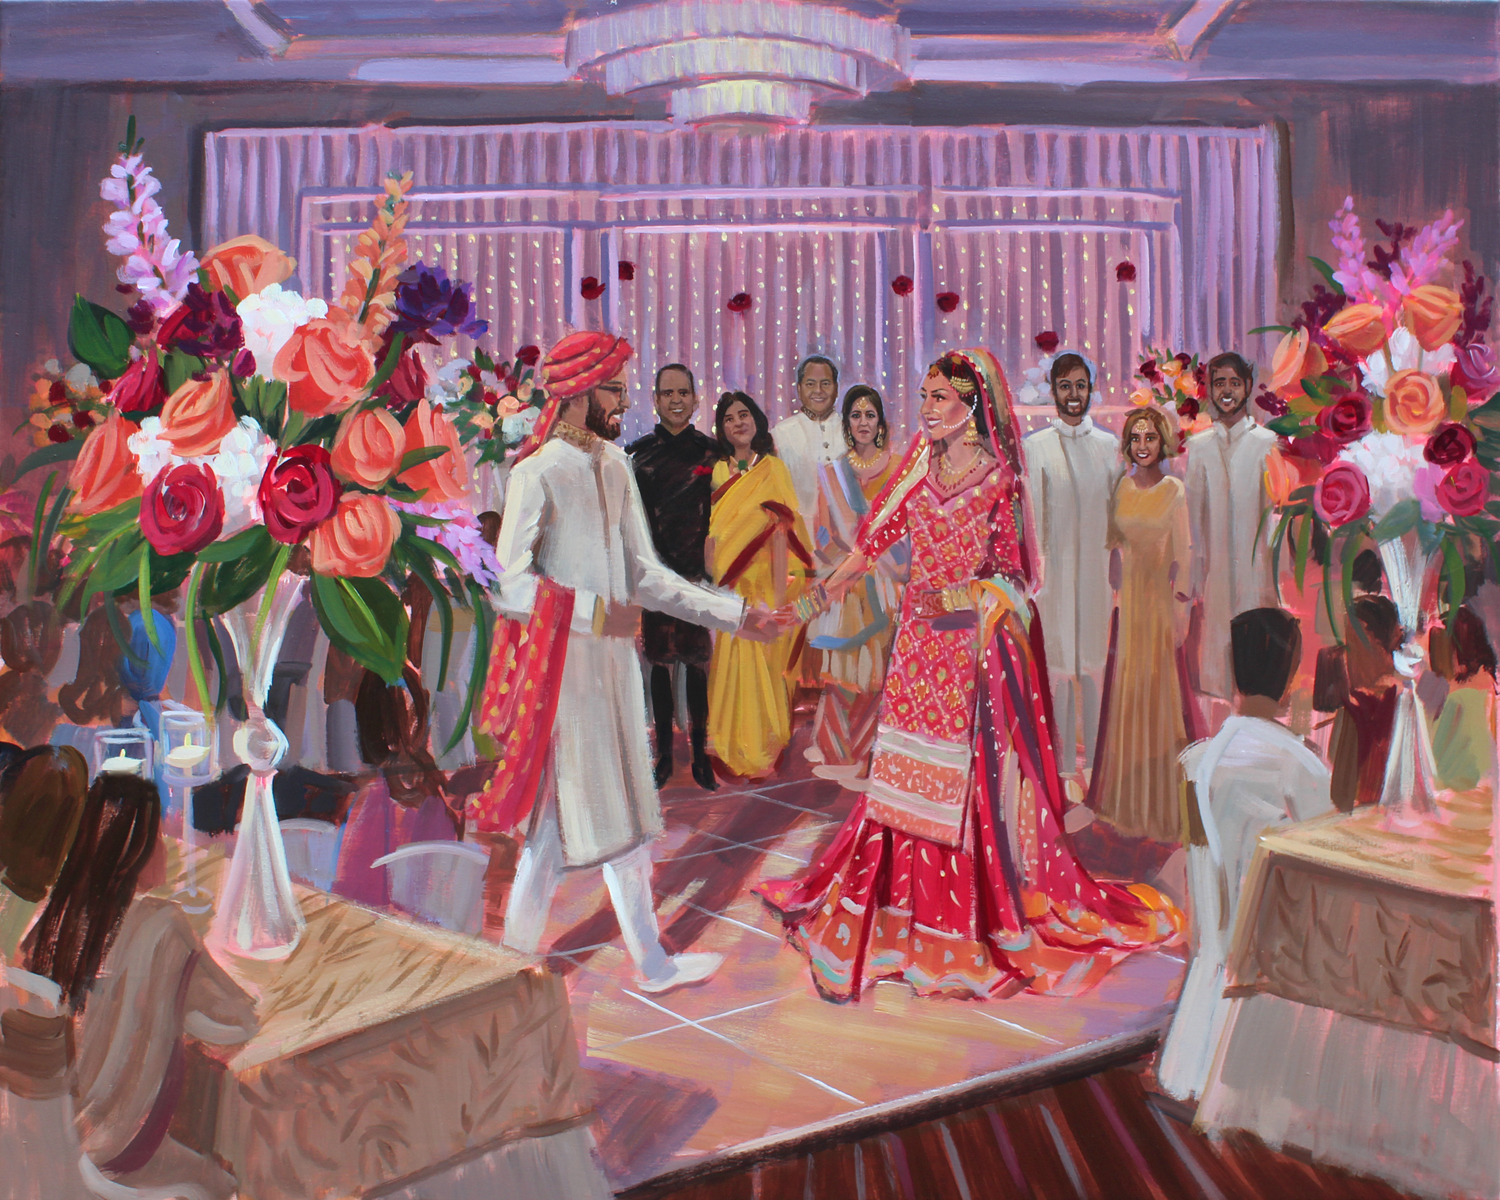 Live wedding painter, Ben Keys, so enjoyed capturing Haya + Adil's gorgeous wedding reception held at St. Louis' Hyatt Regency located right at the Arch.